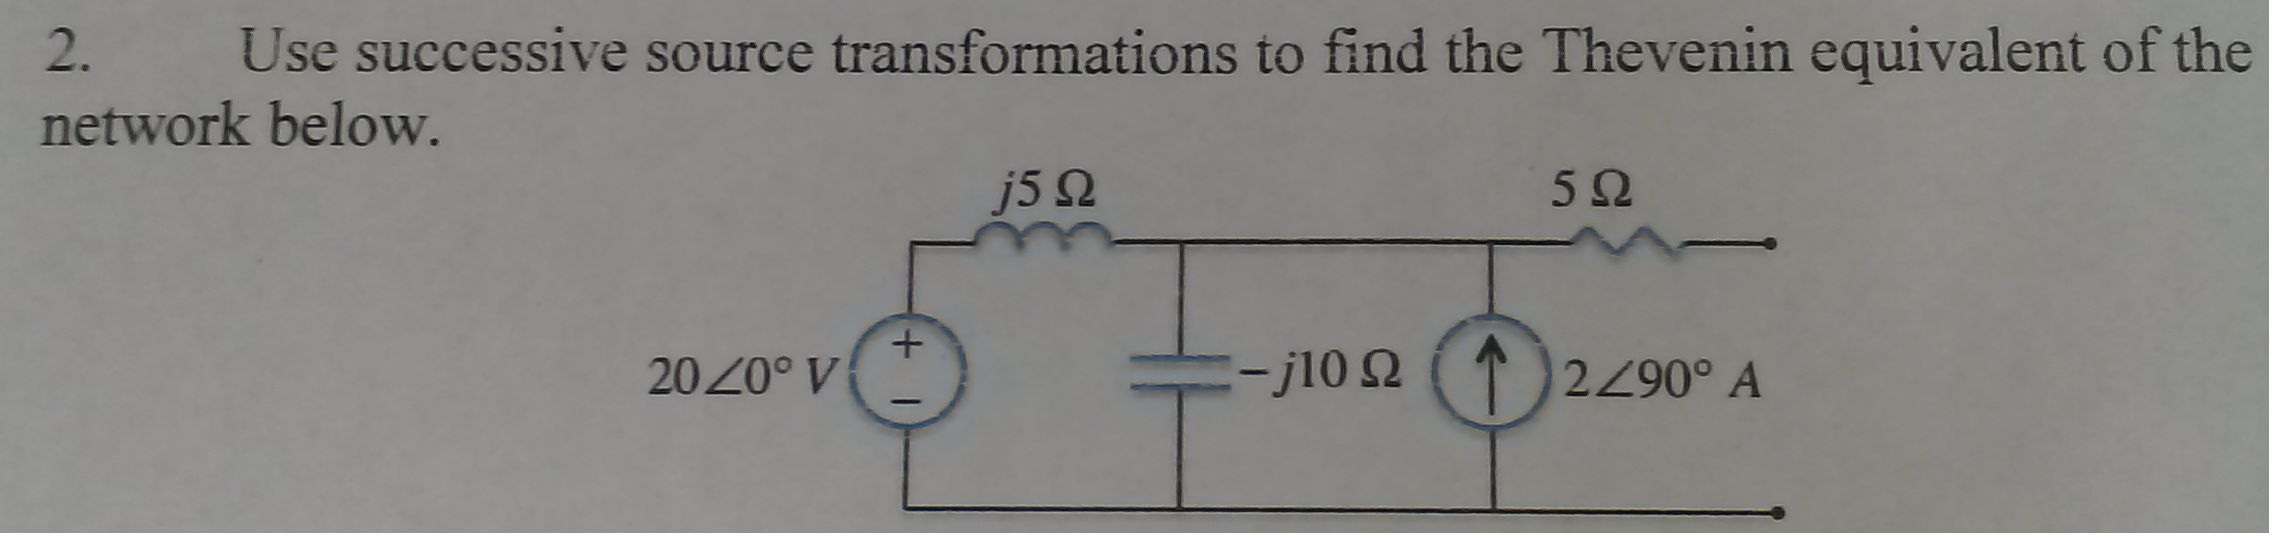 Use successive source transformations to find the